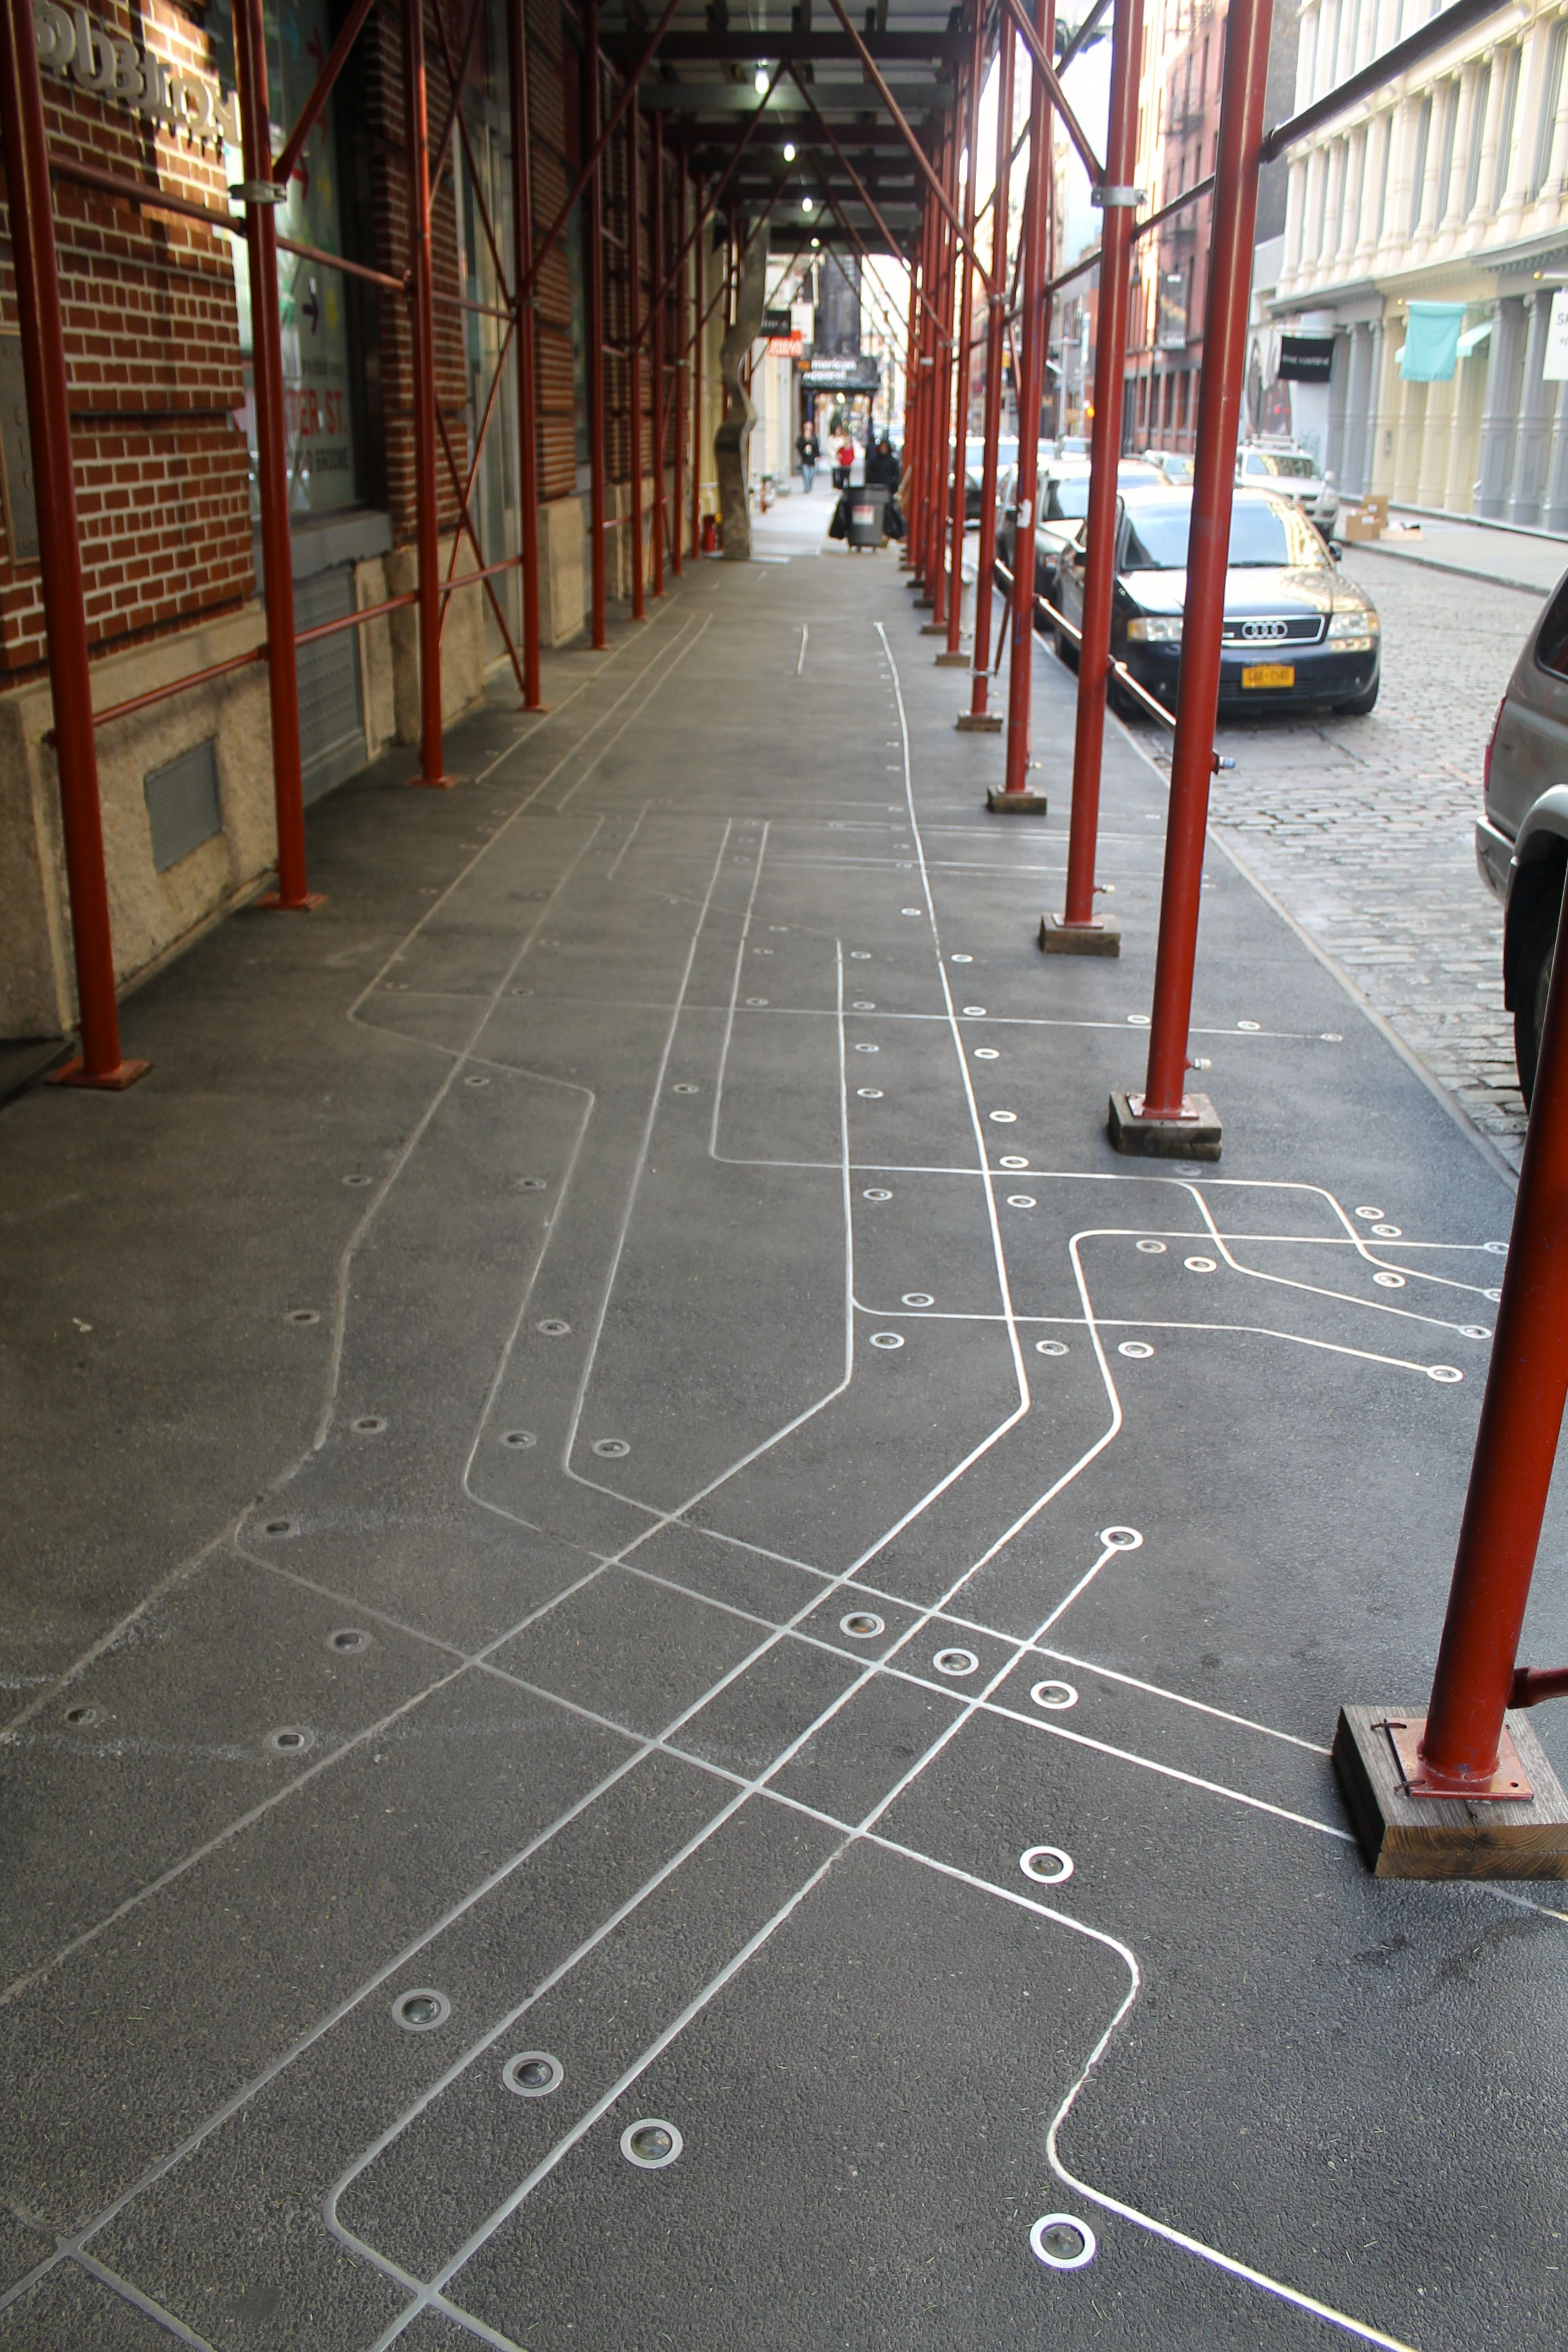 Floating Subway Map.Subway Map Floating On A Nyc Sidewalk I Ve Heard Of This But The